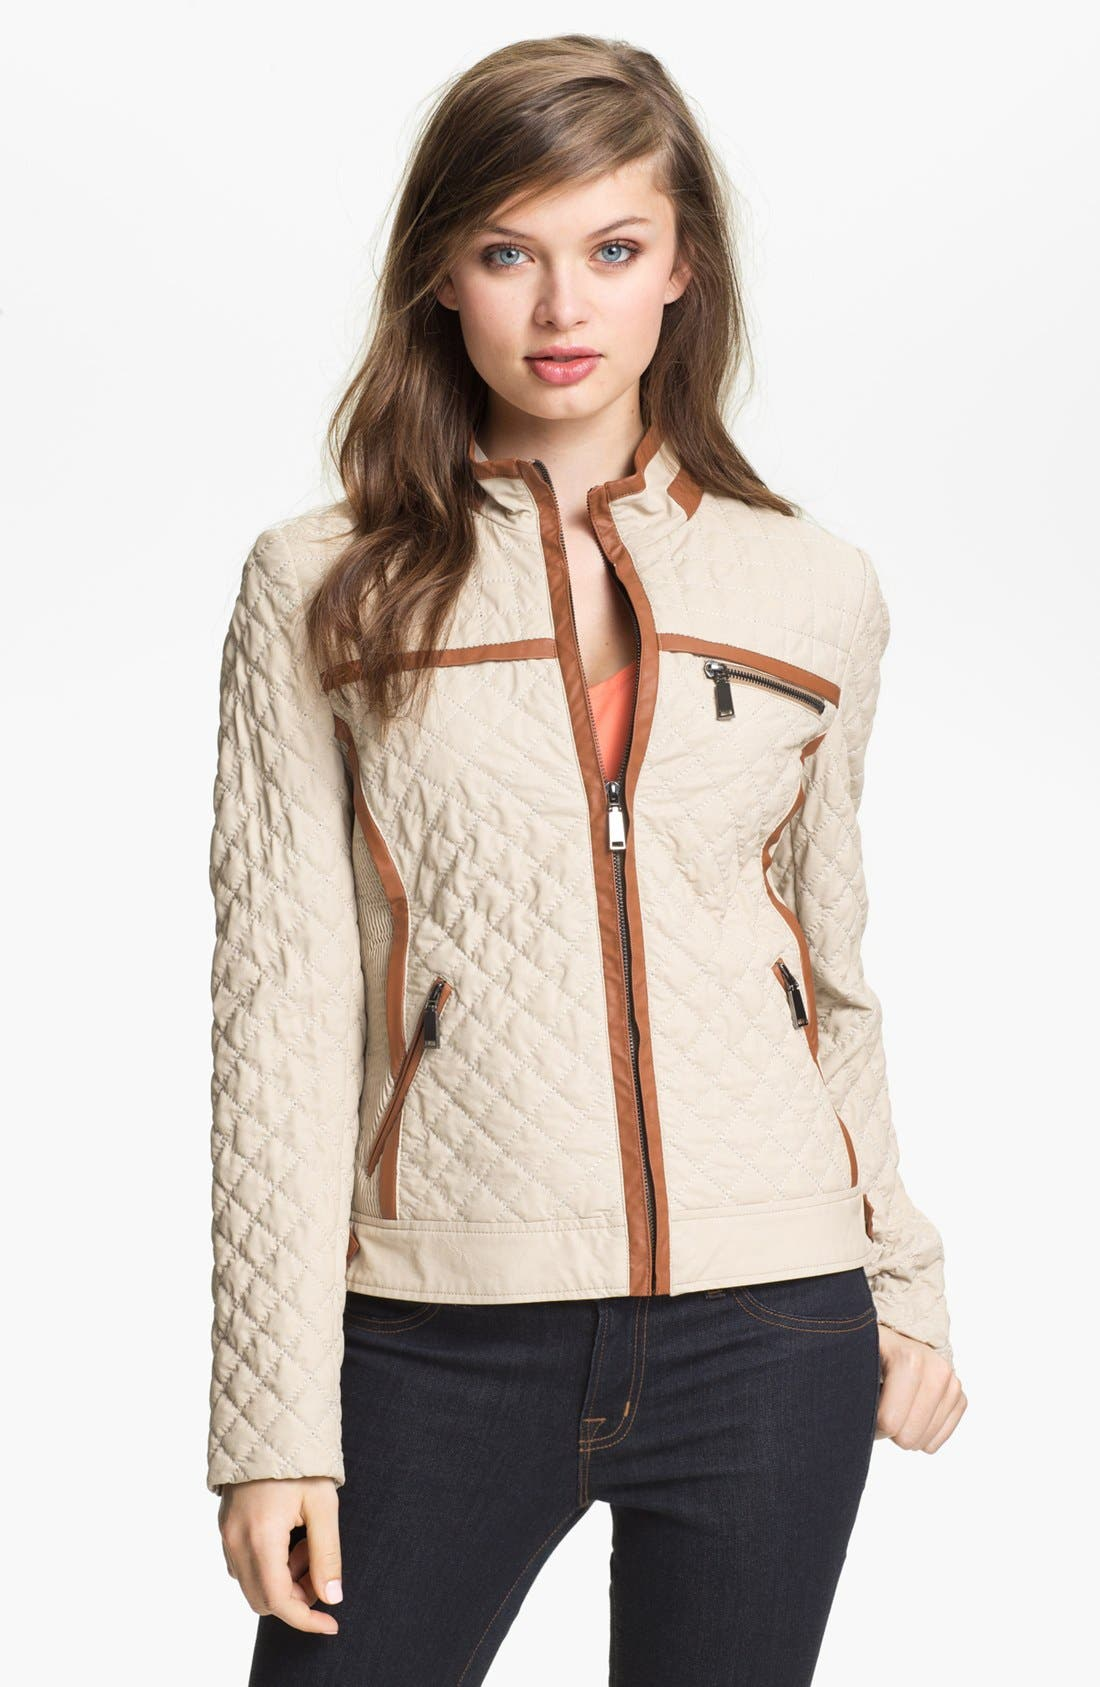 Alternate Image 1 Selected - Via Spiga Faux Leather Trim Quilted Jacket (Online Only)